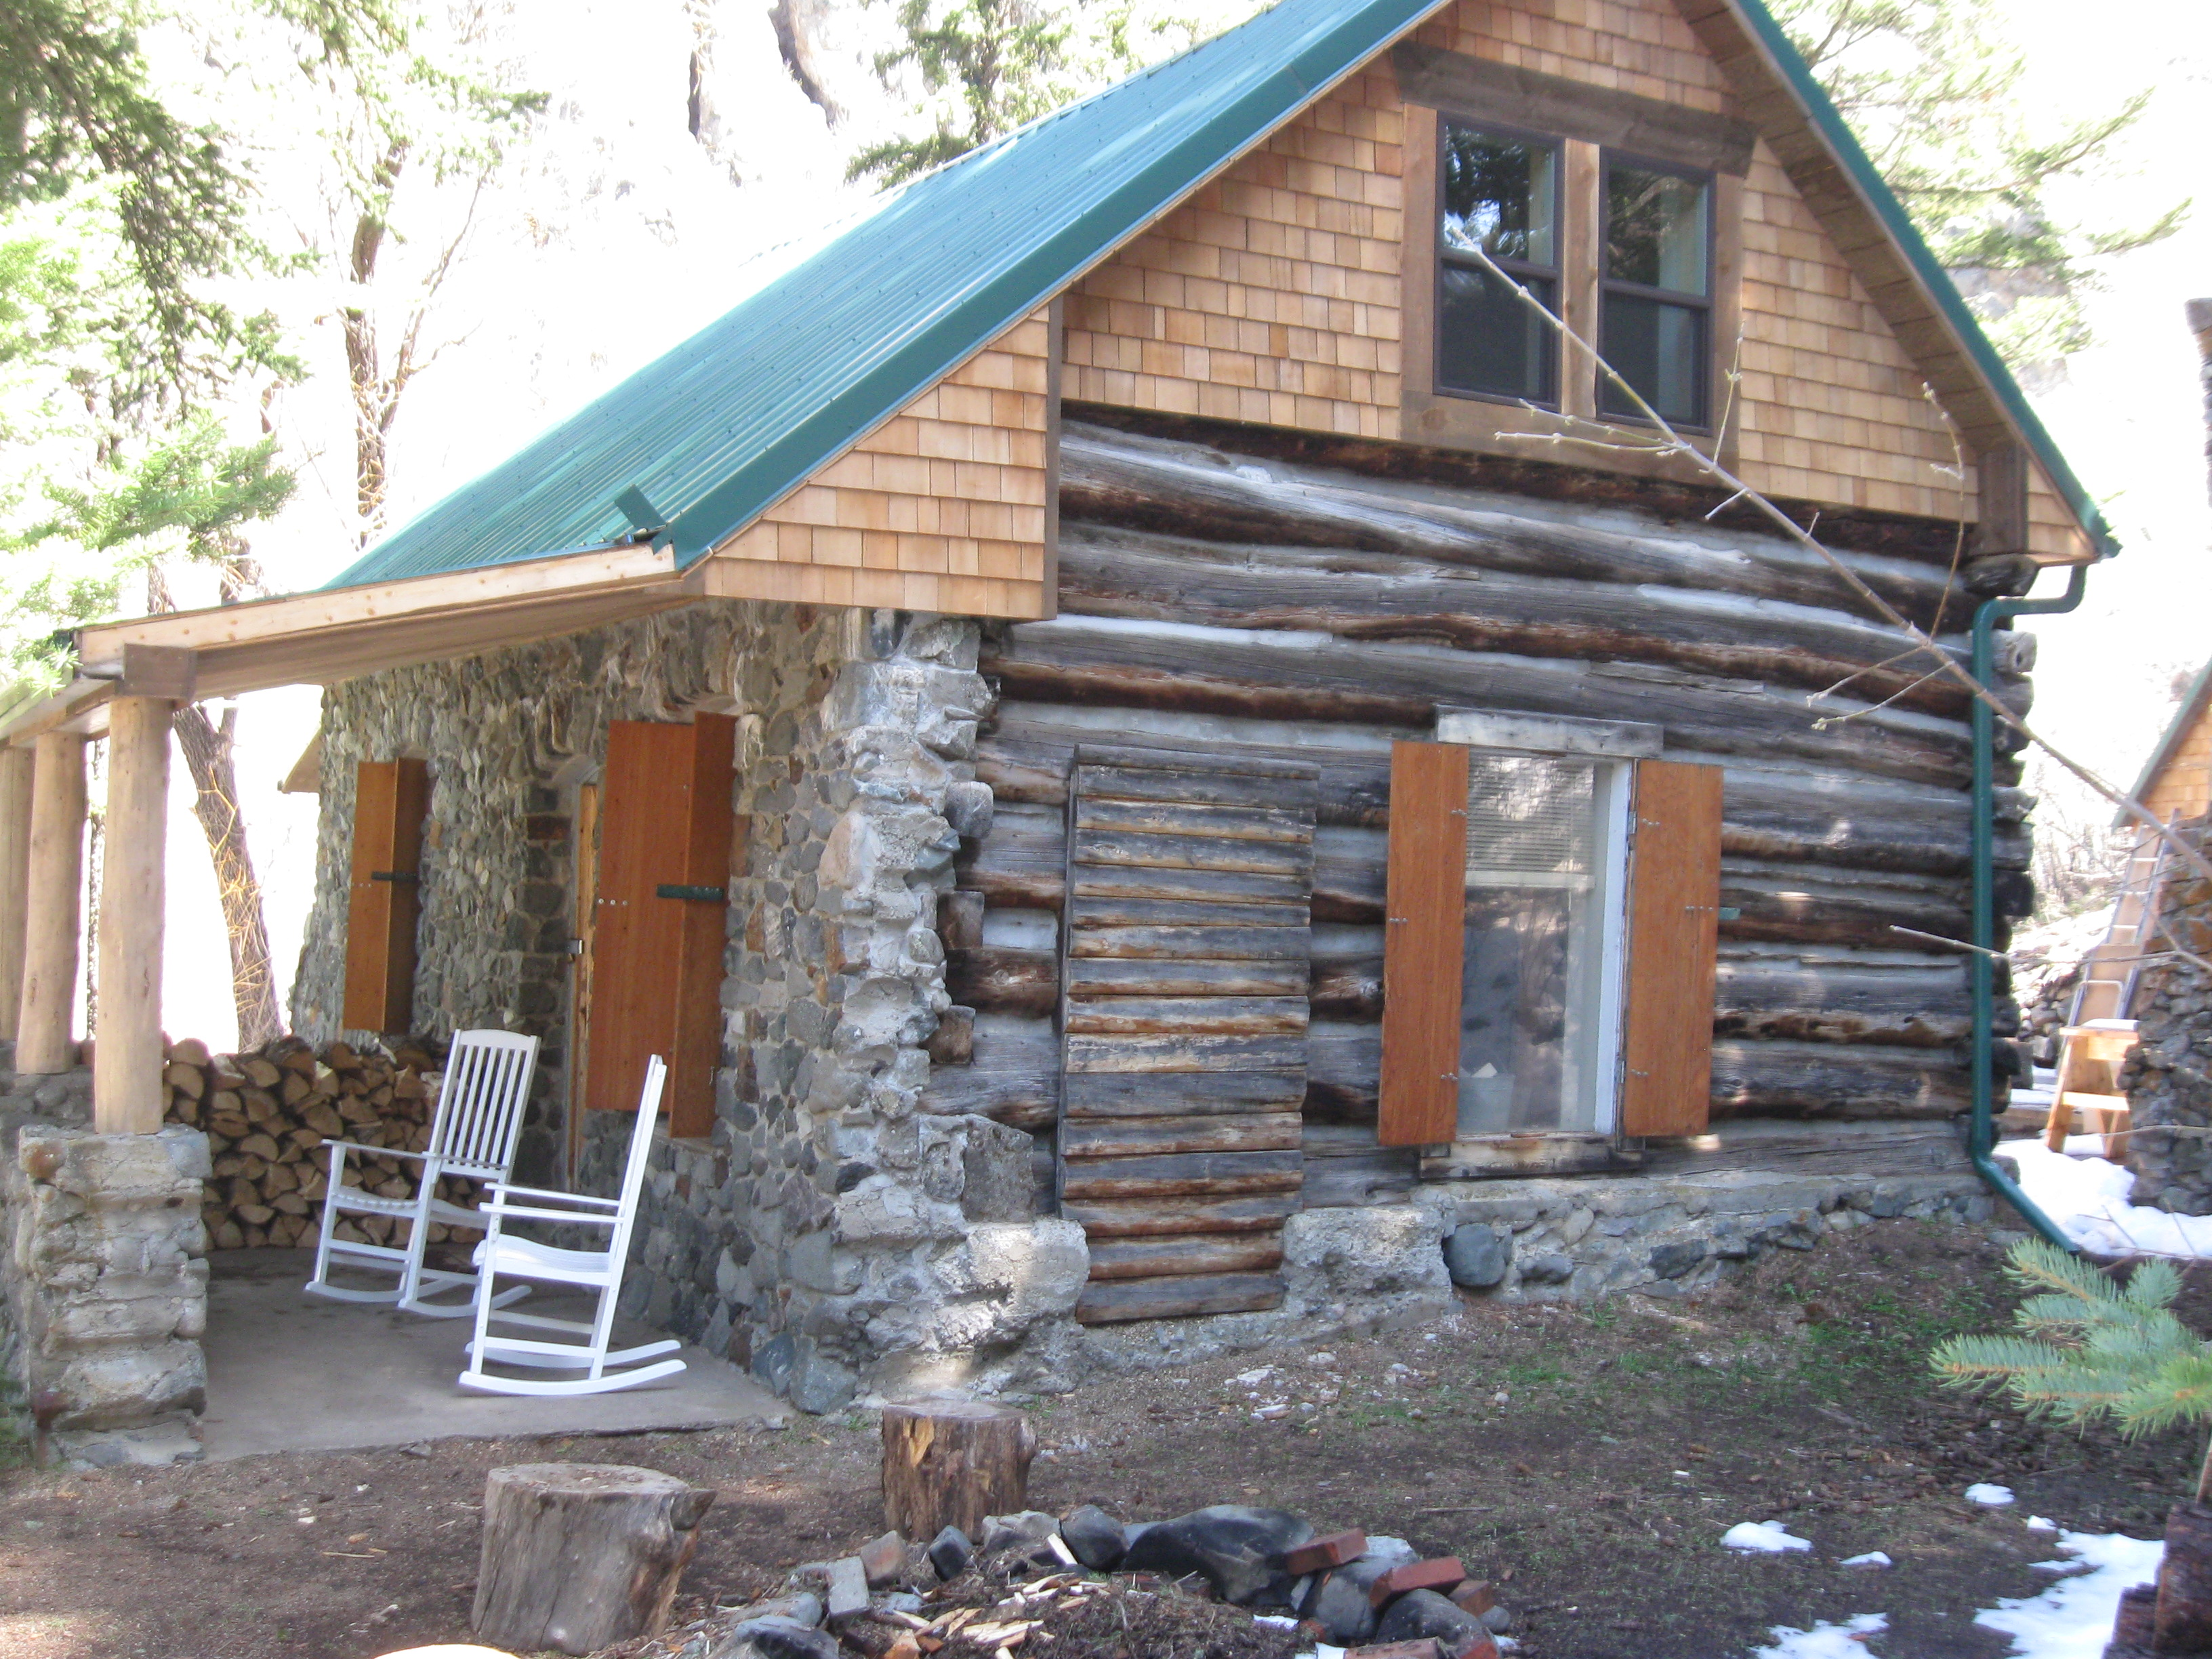 montana view home vacation cabins by cabin bedrooms mountain rentals listproperties all